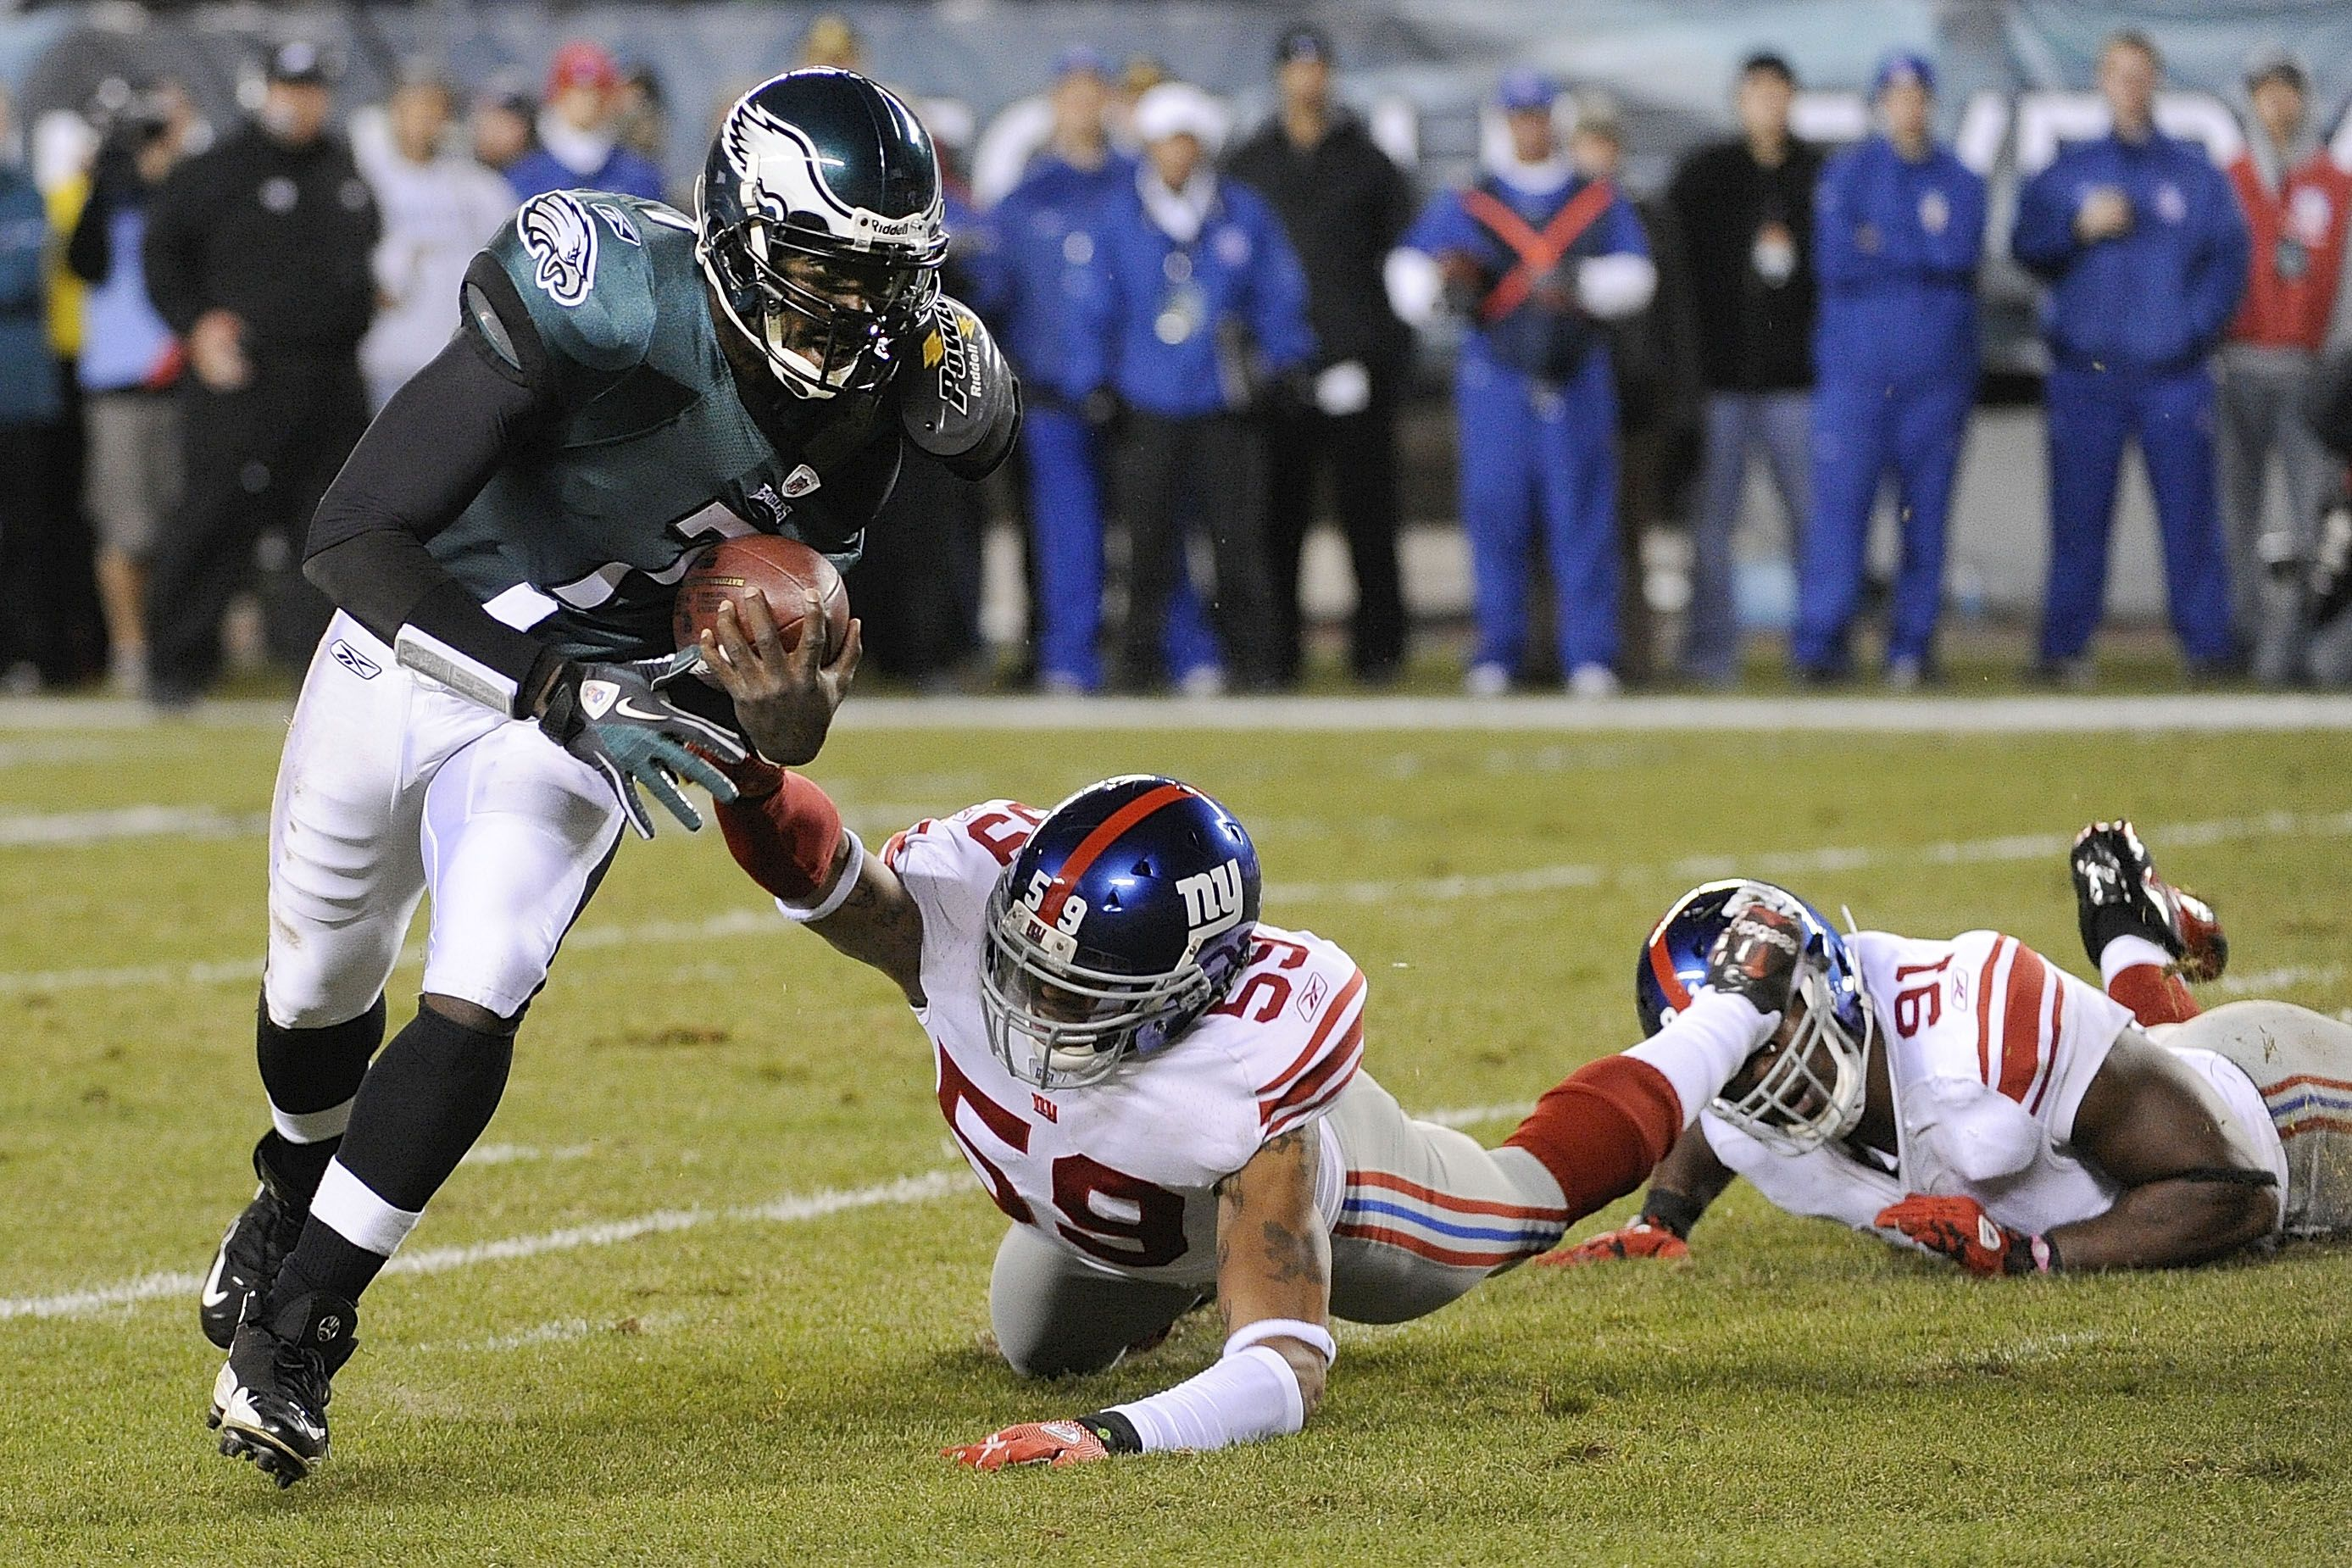 Michael Vick rolling over the New York Giants